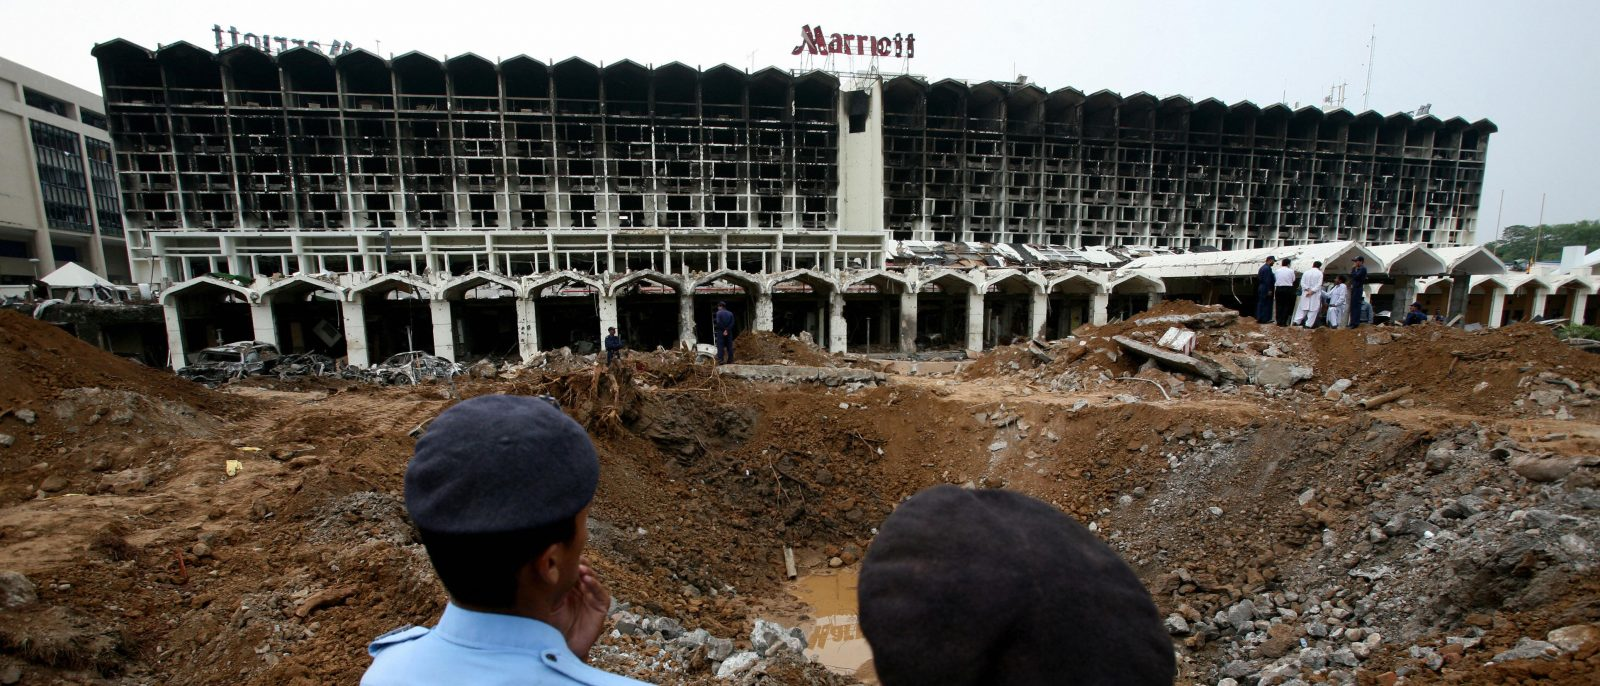 destruction at Marriott hotel